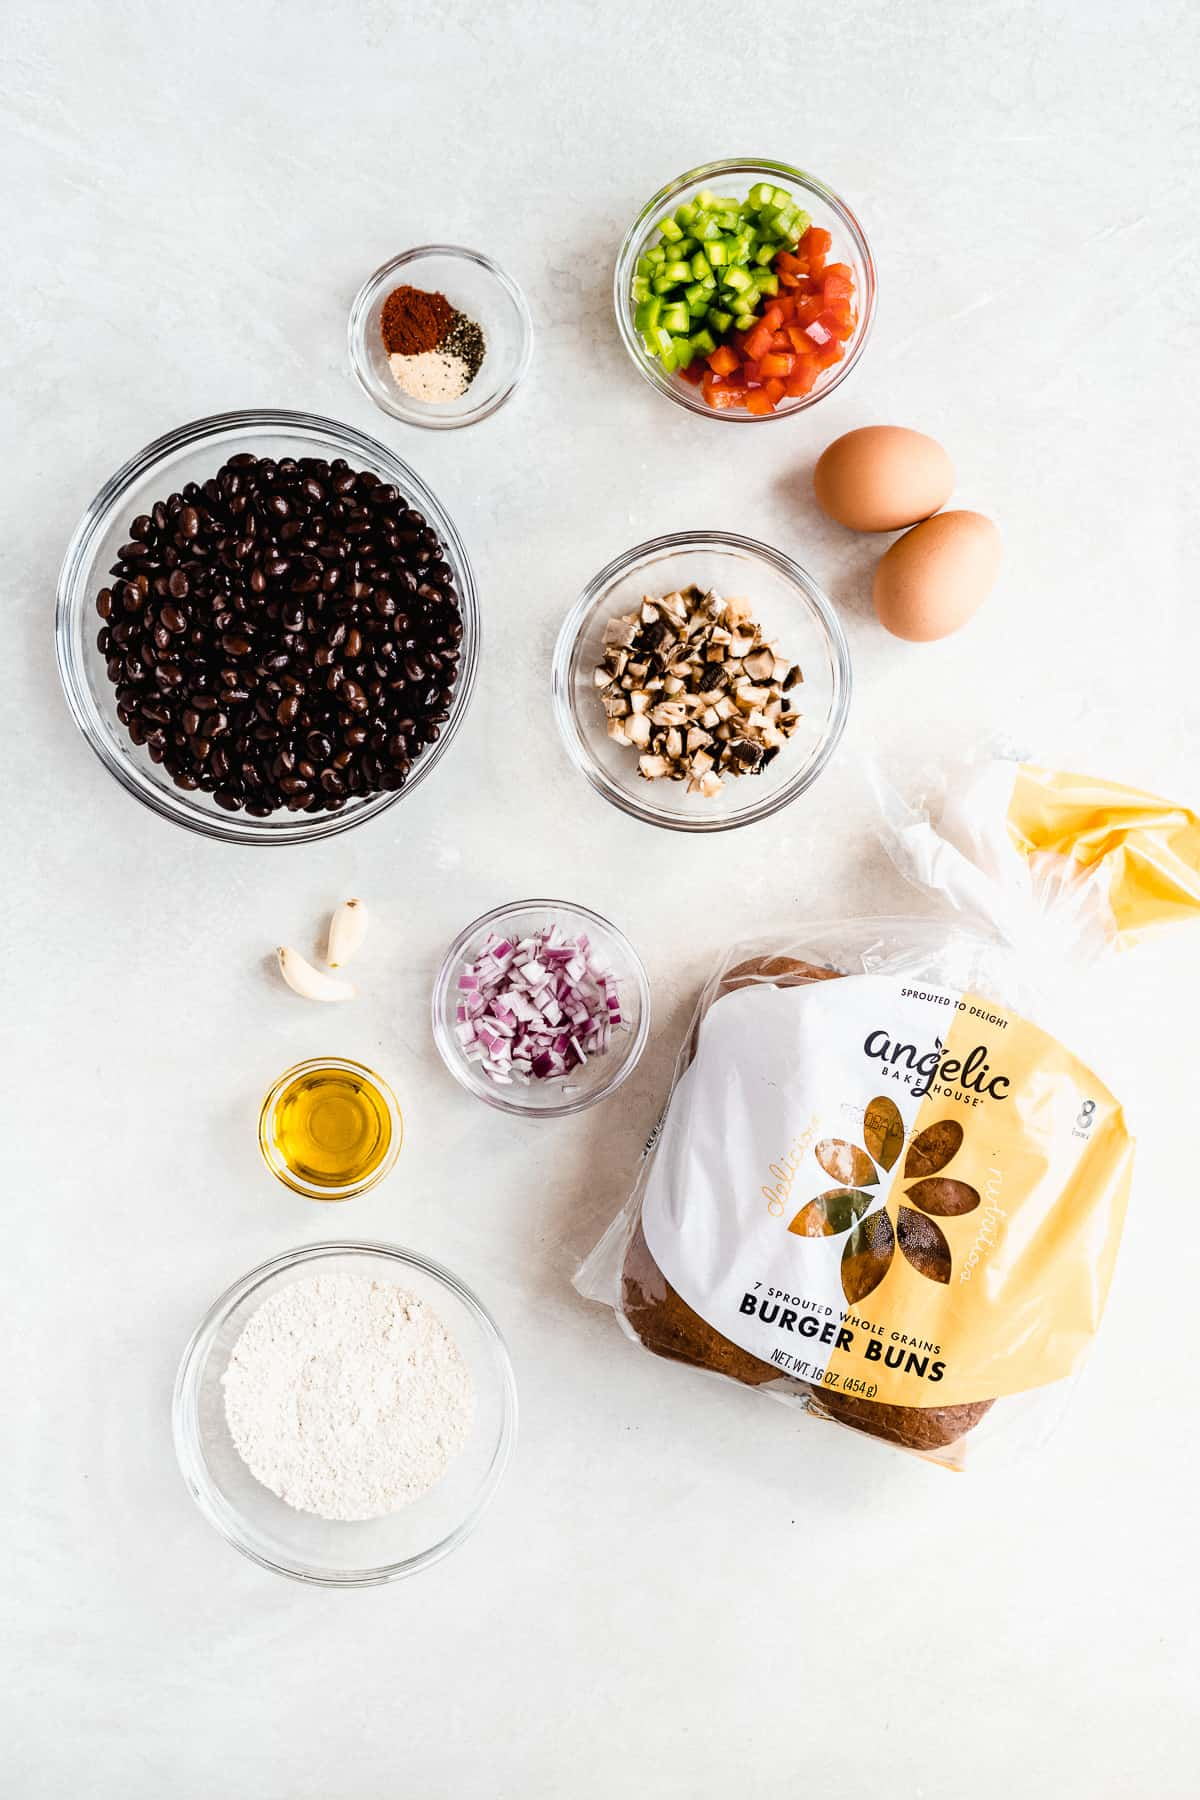 Overhead photo of the ingredients that make up the black bean burger and a bag of Angelic Bakehouse buns.